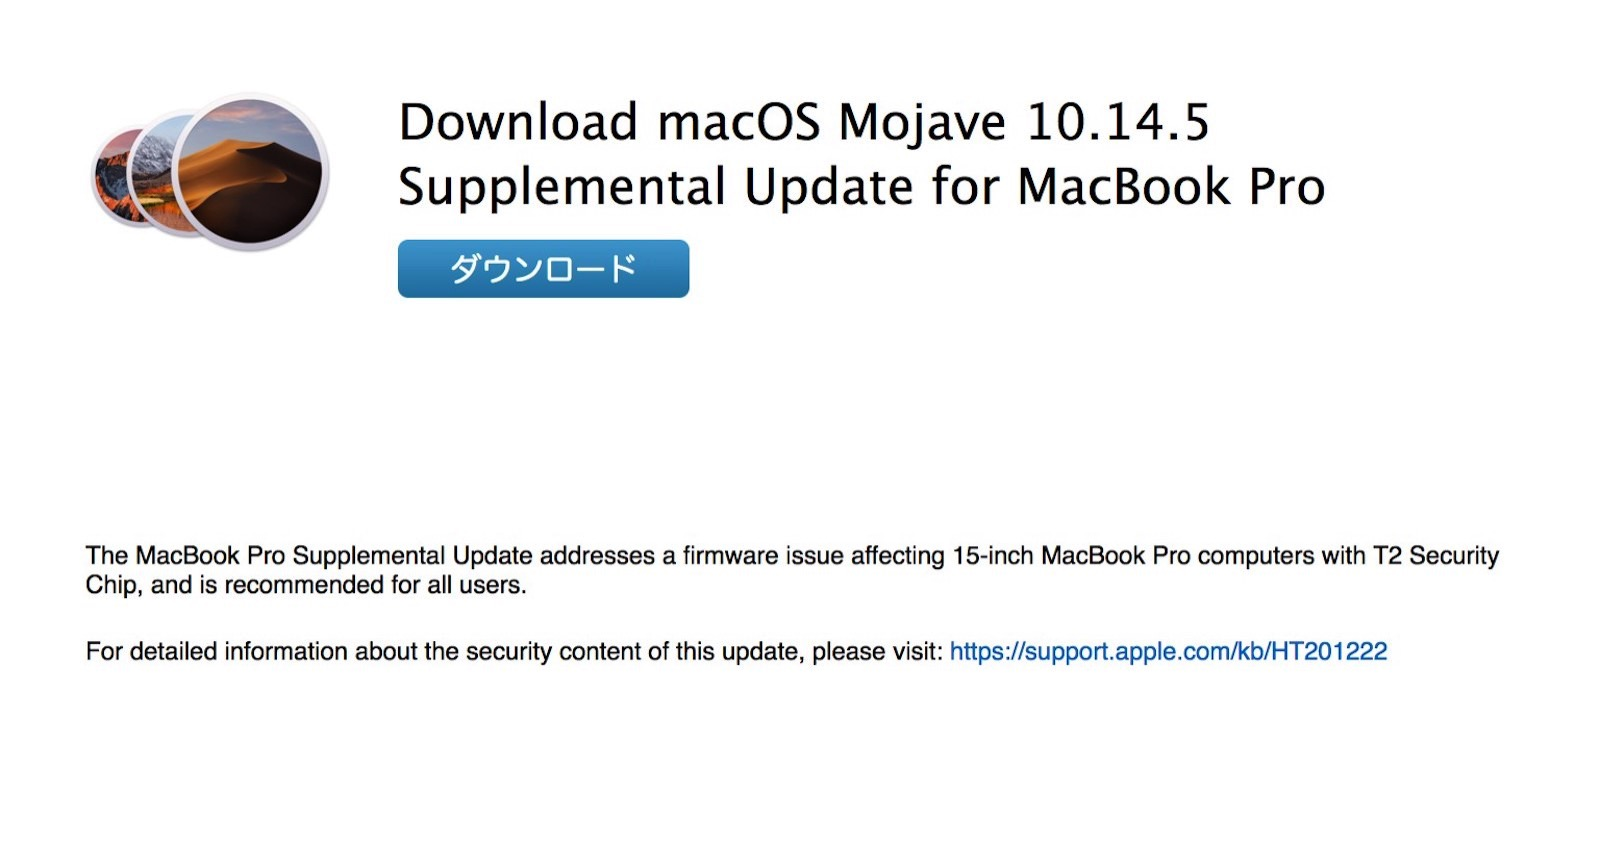 MacOS Mojave Supplemental Update for MBP